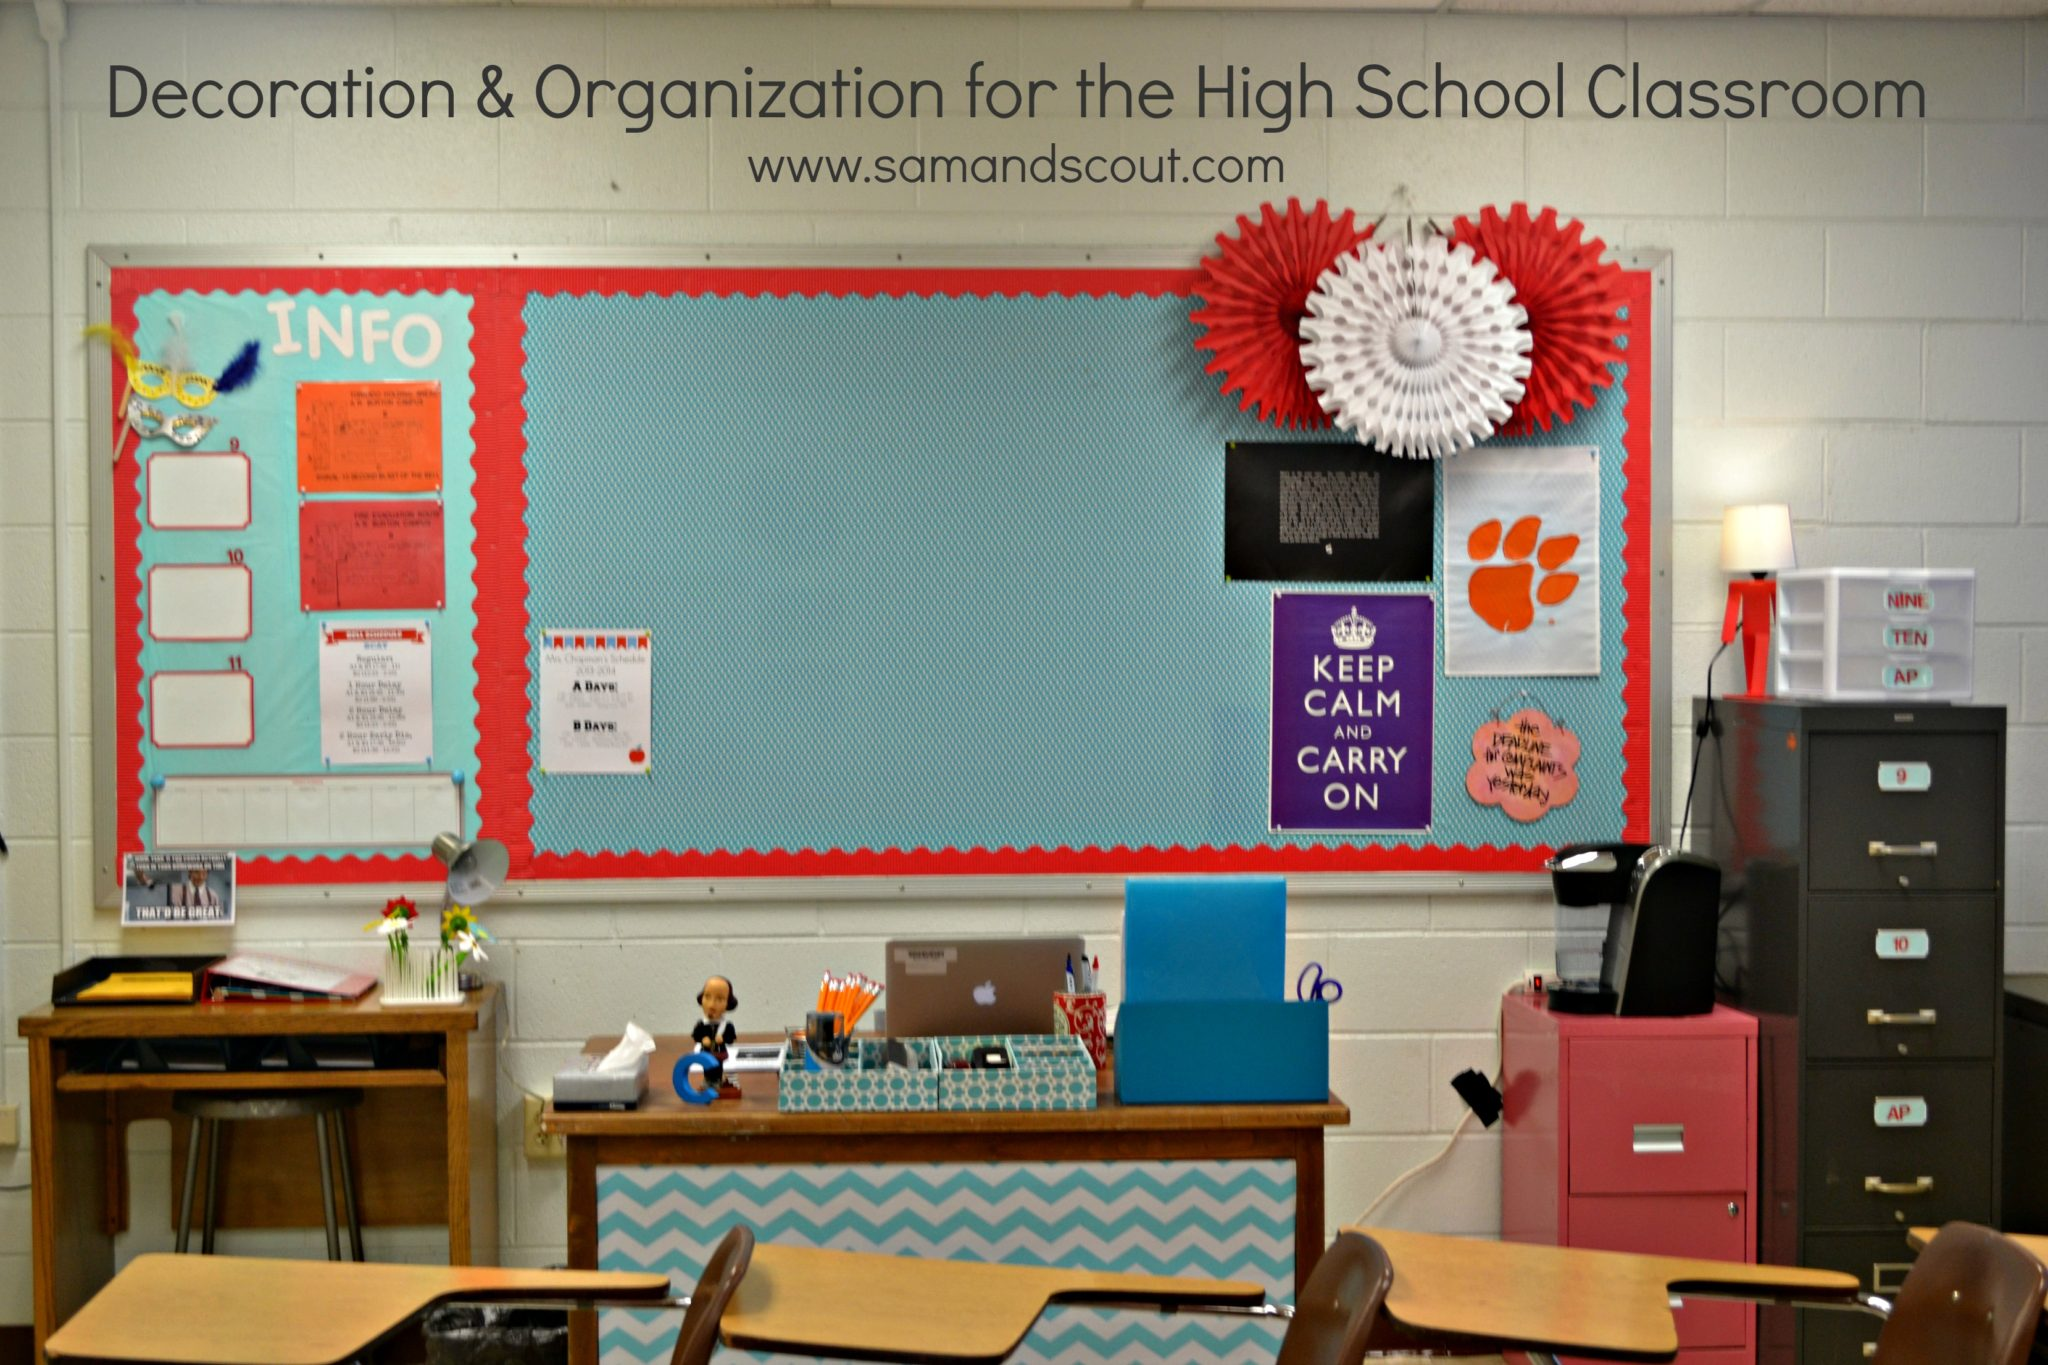 Ideas In Classroom ~ Decoration organization for the high school classroom